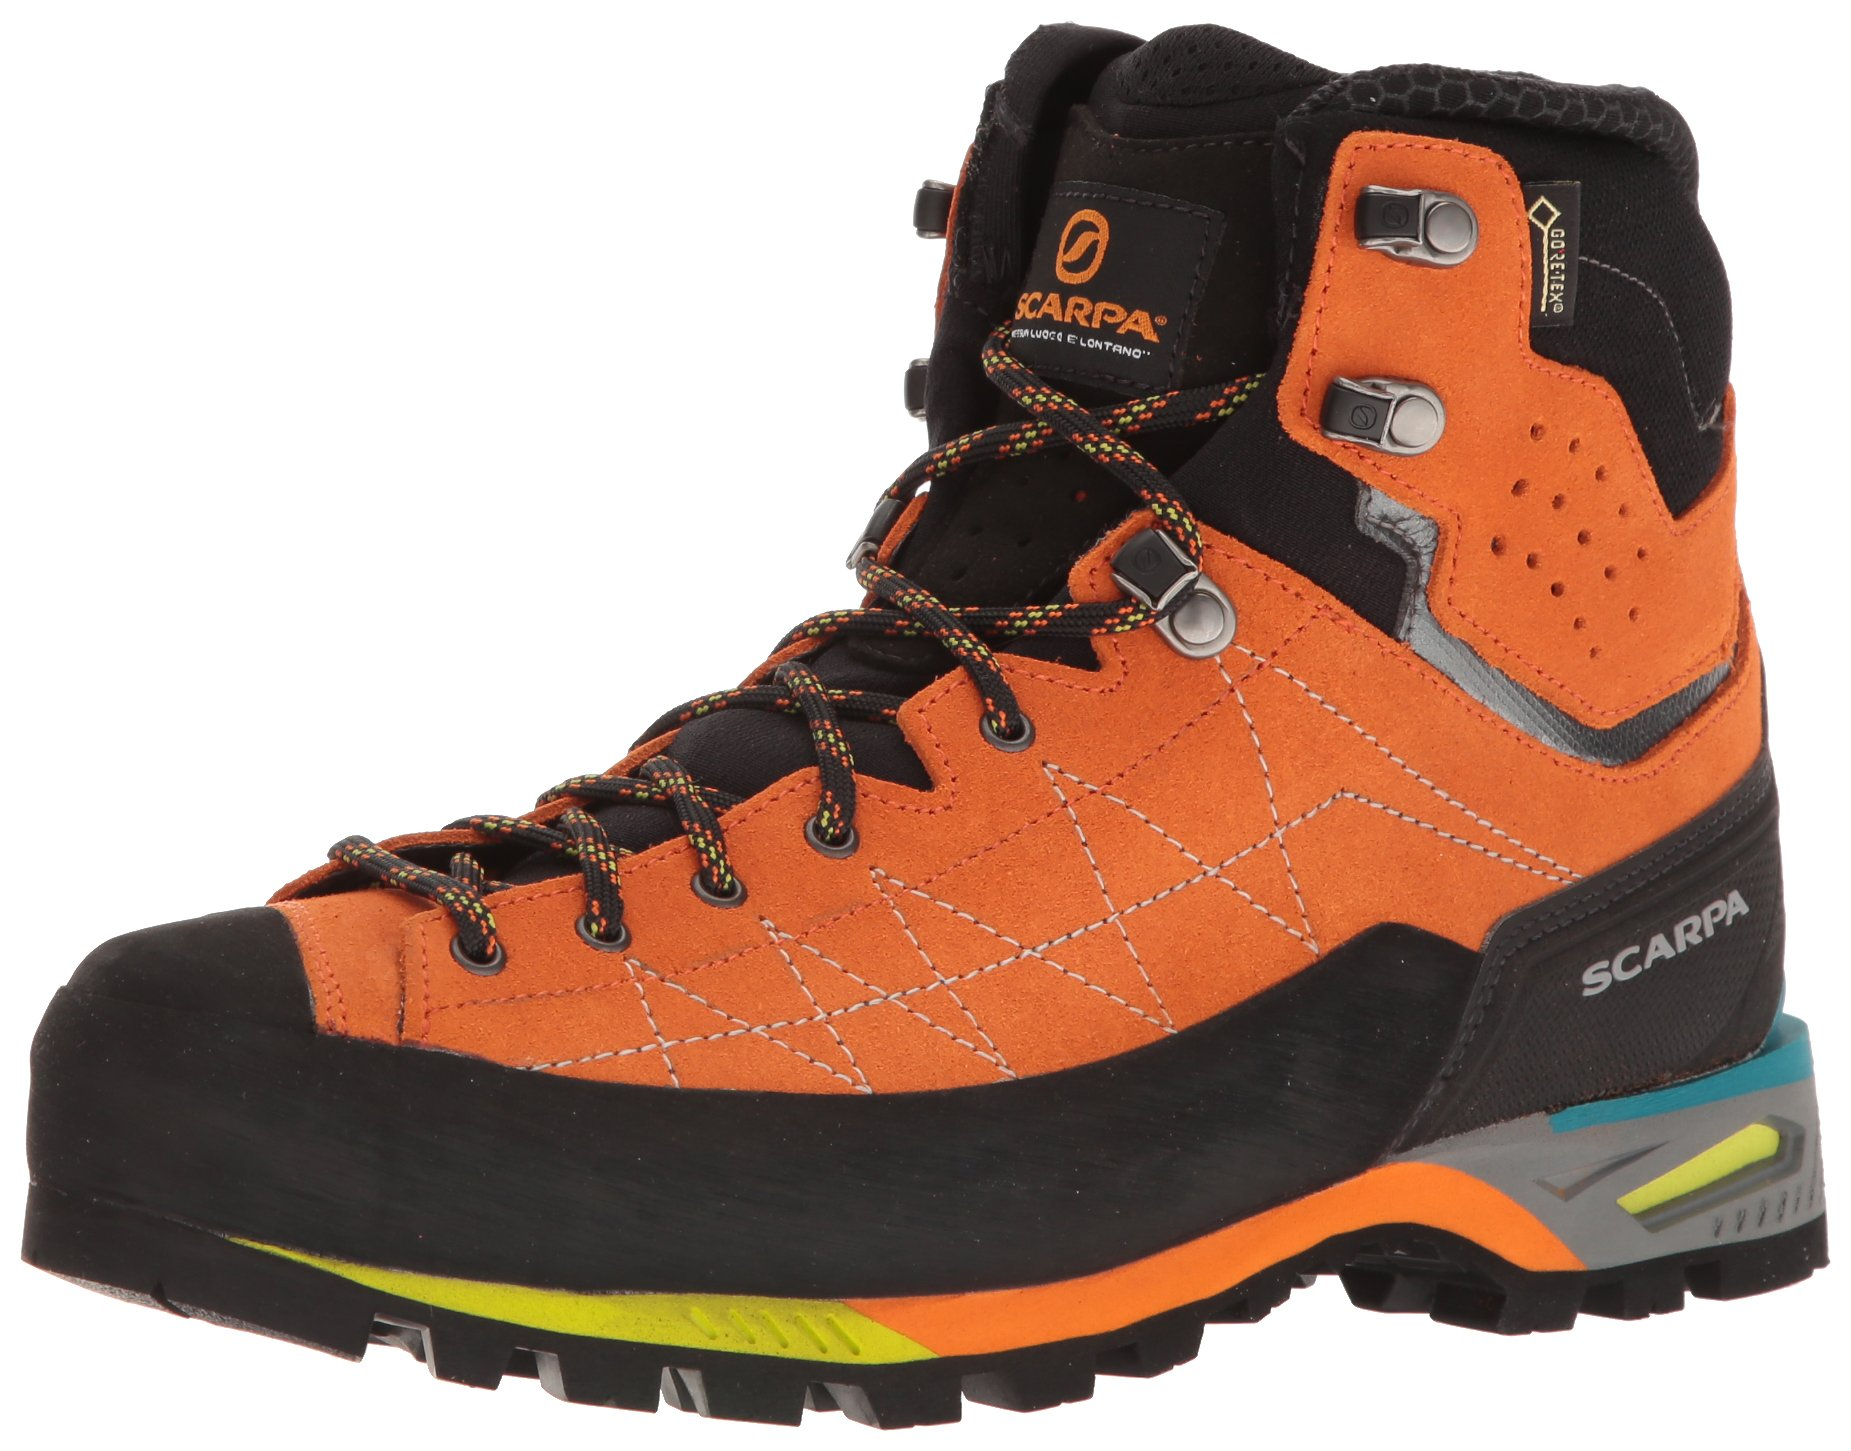 SCARPA Men's Zodiac TECH GTX Mountaineering Boot, Tonic, 46 EU/12 M US by SCARPA